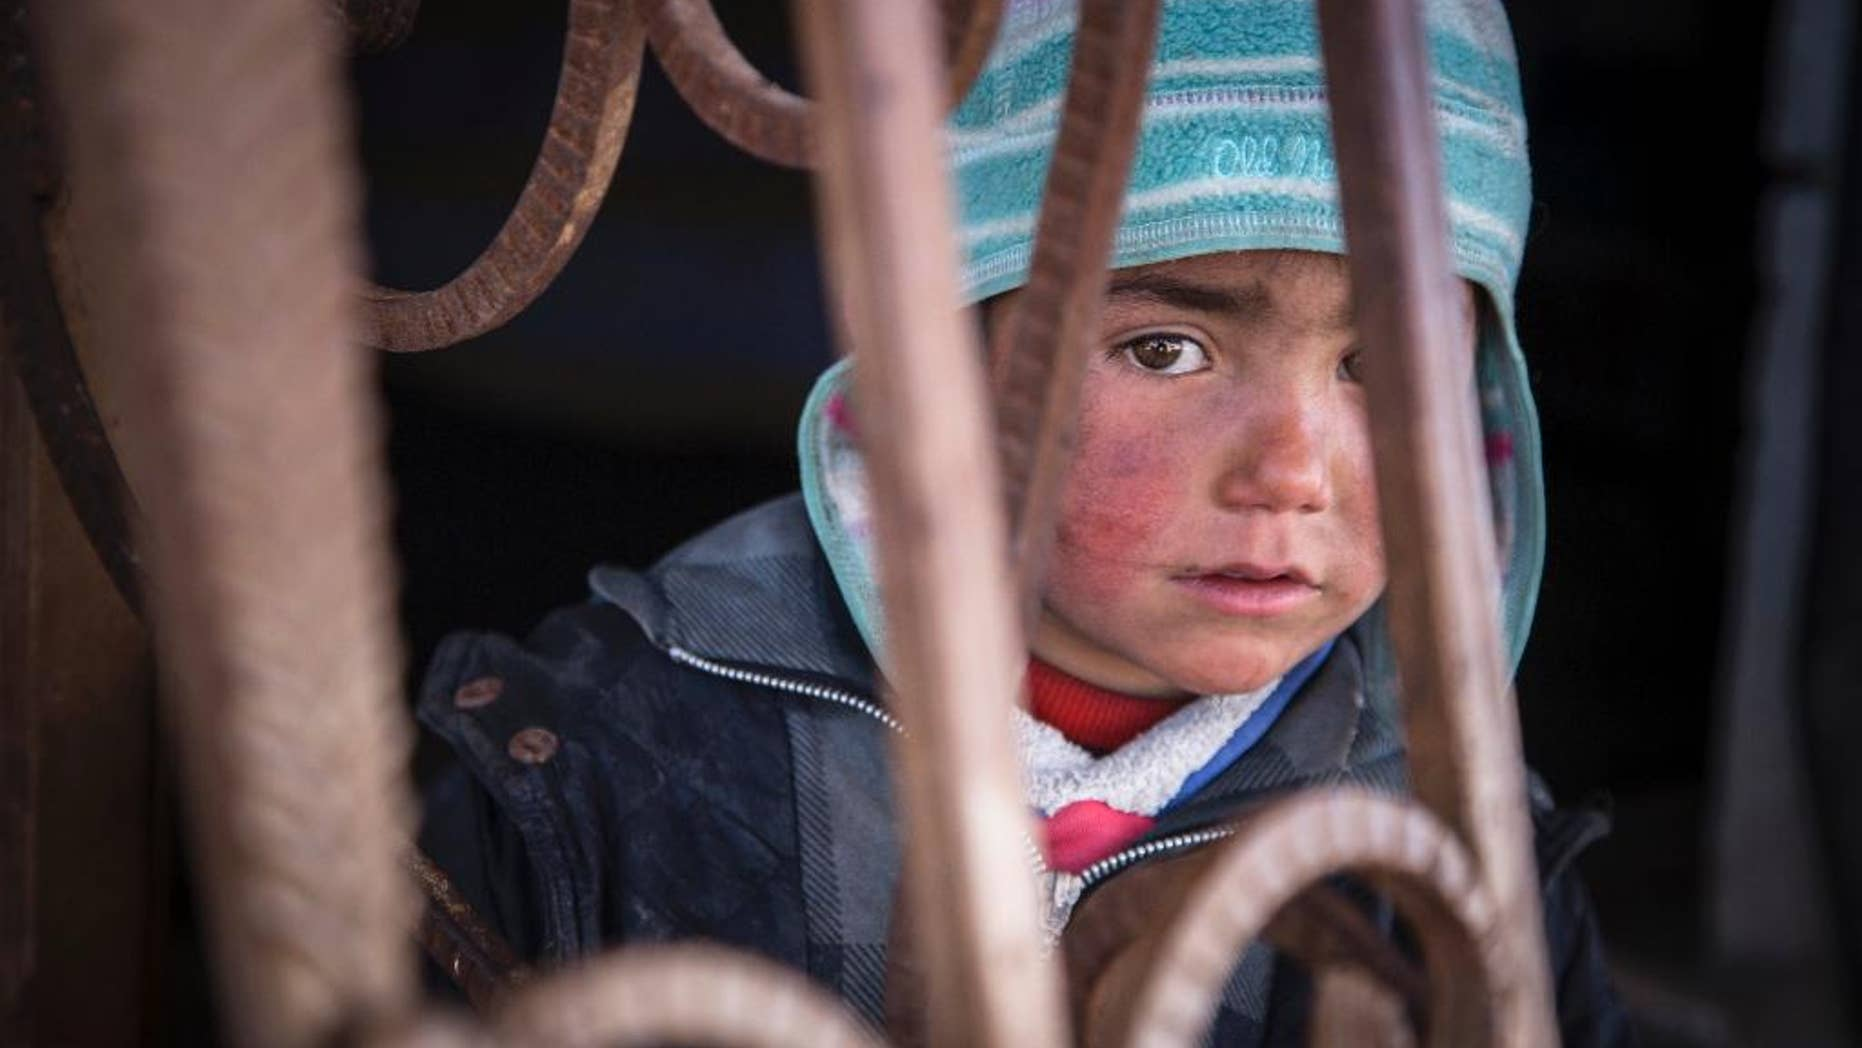 In this picture taken, Feb. 16, 2017, a child looks out from an abandoned petrol station where he and his family now live. The petrol station, badly damaged by war, is now the home of five families who have returned to Tel Abiad district, Raqqa Governorate, Syria, after fleeing from ISIS two years earlier only to find their homes destroyed. A new report by Save the Children says Syrian children are showing symptoms of 'toxic stress' from war exposure, and attempting self-harm and suicide. (Photo Courtesy: Jonathan Hyams, Save the Children via AP)